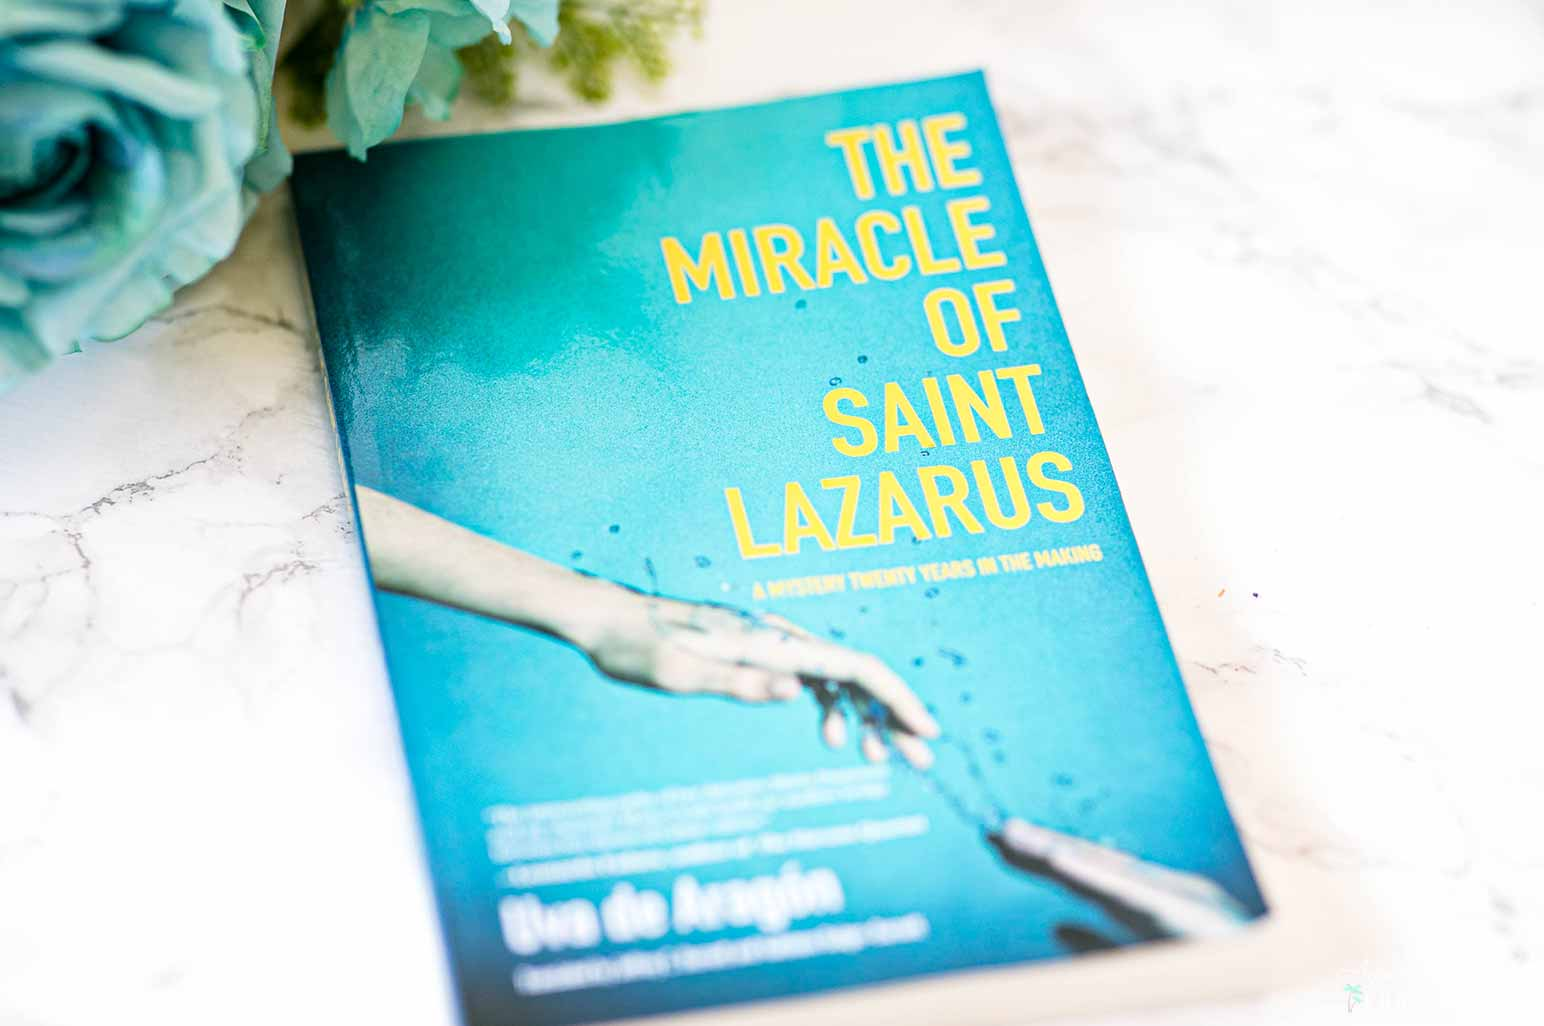 The Miracle of Saint Lazarus: A Mystery Twenty Years in the Making